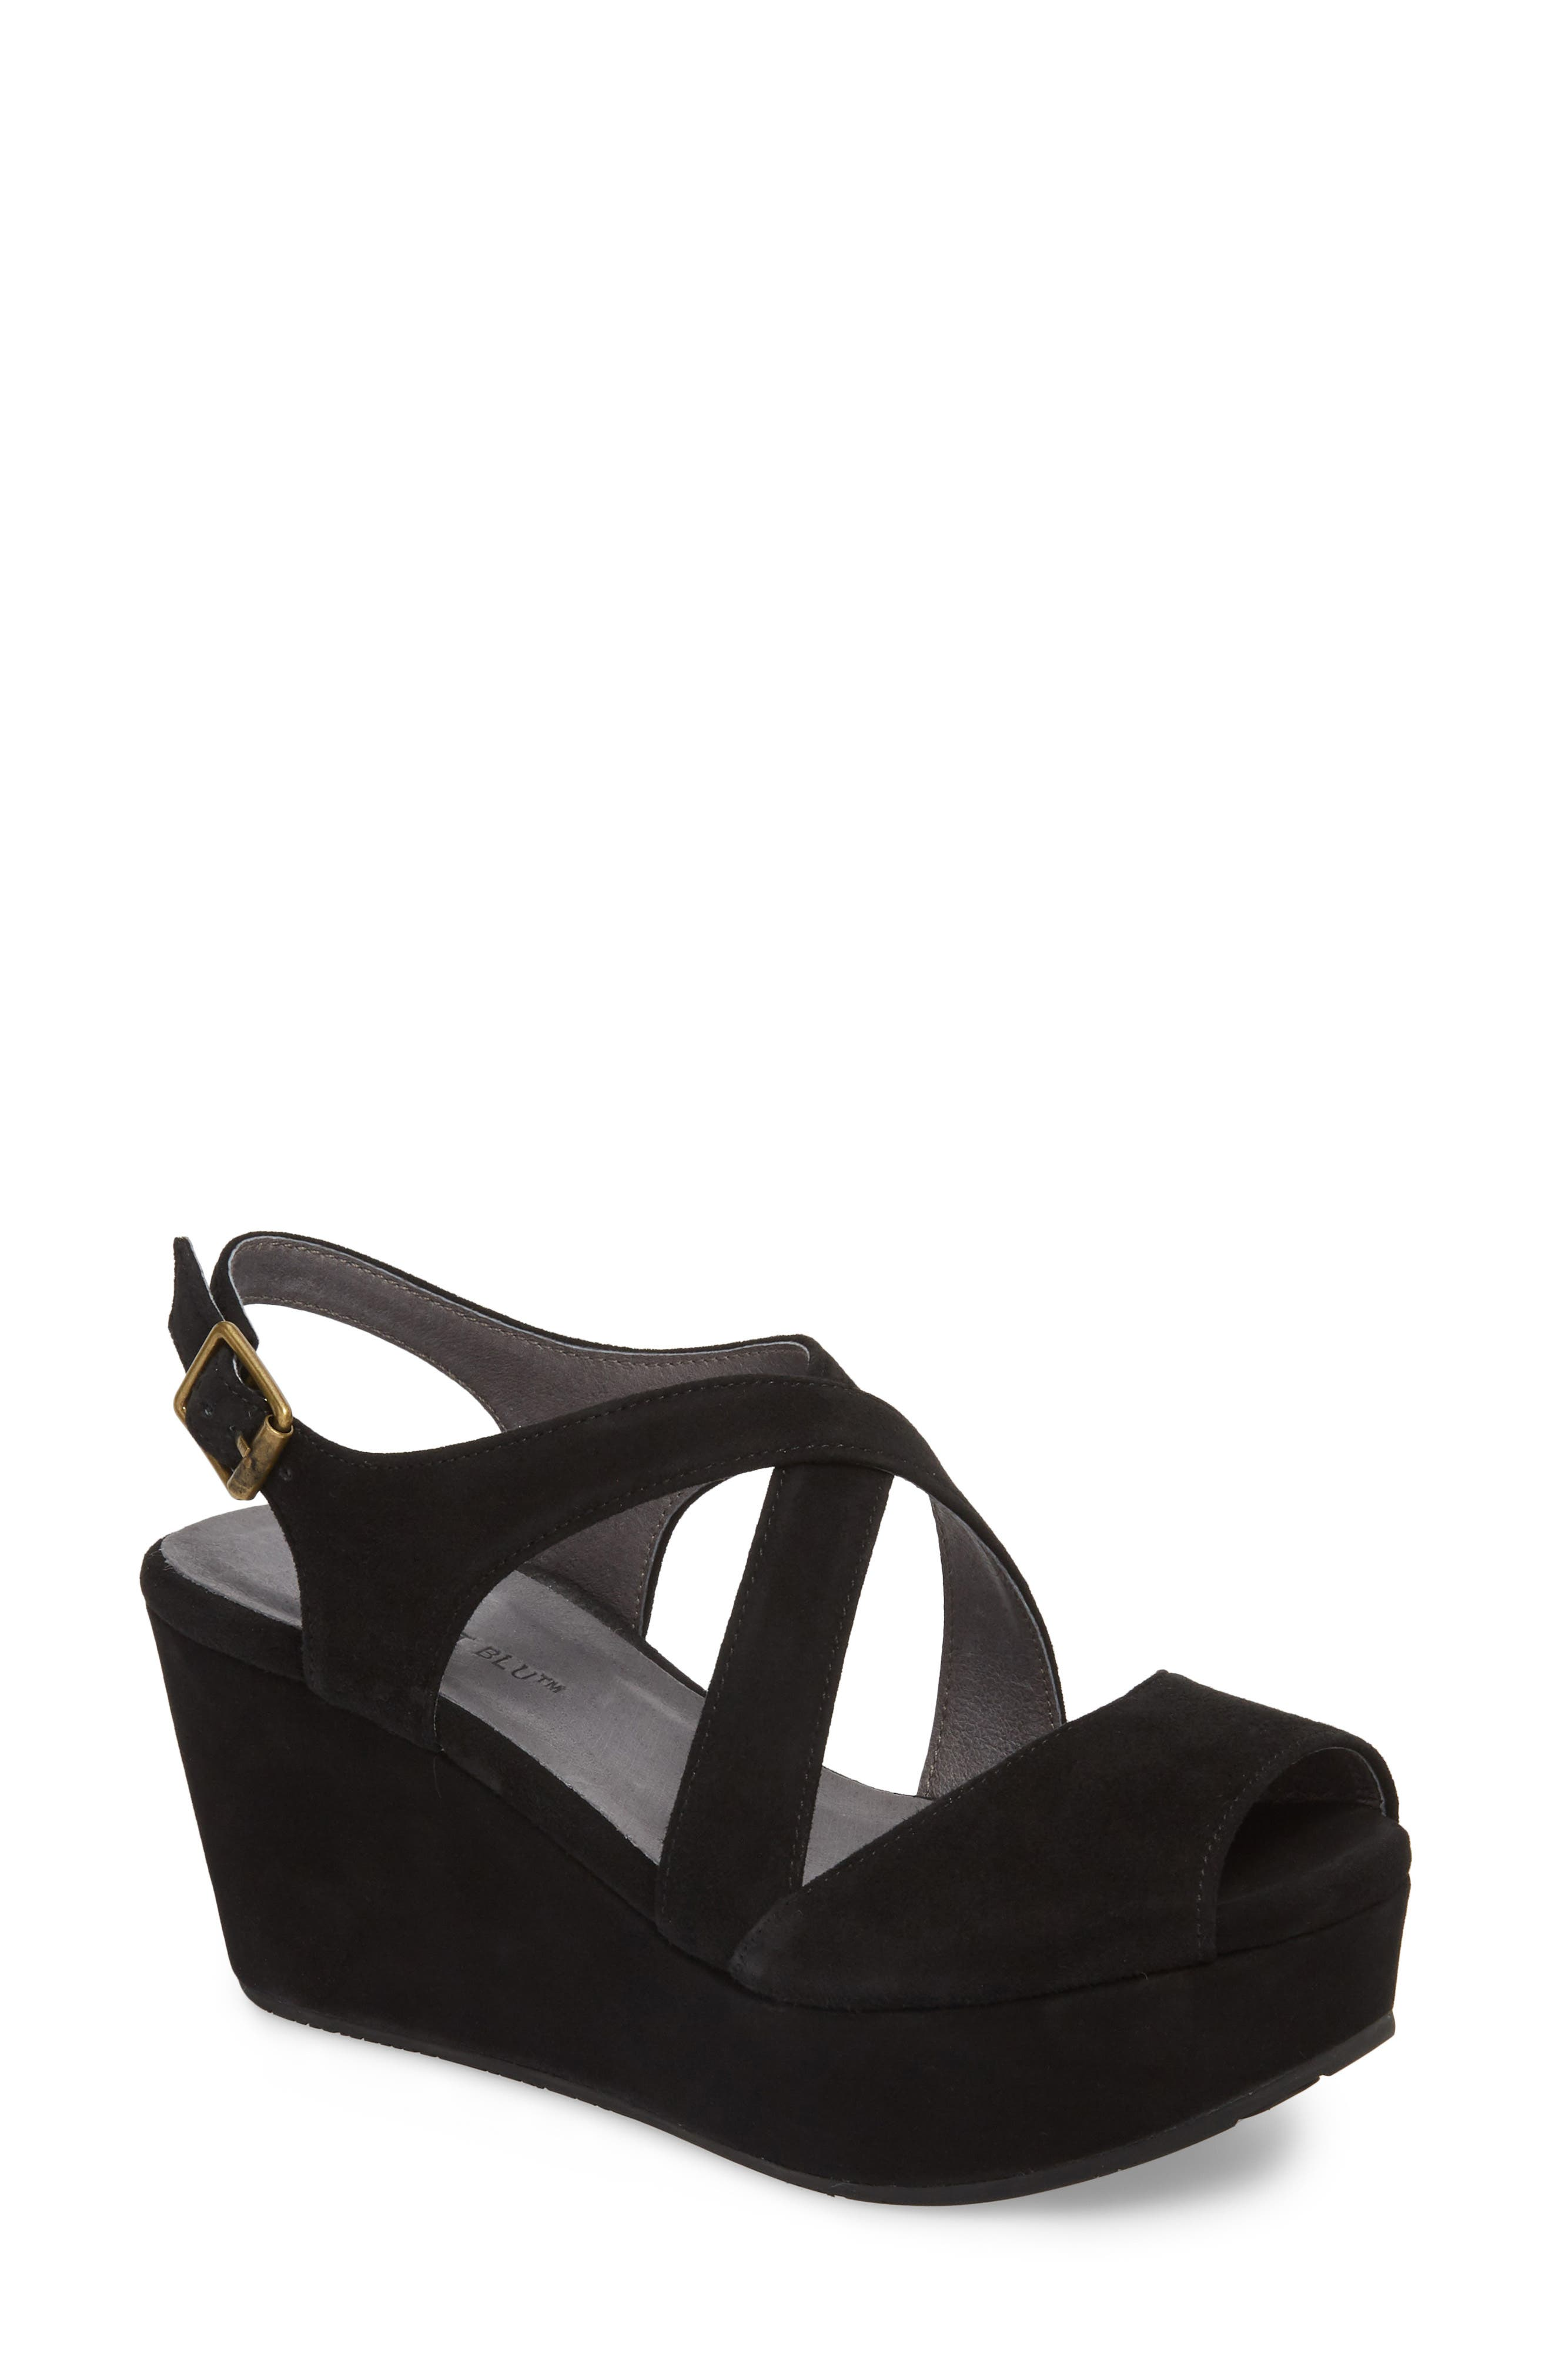 Winnie Wedge Sandal,                         Main,                         color, BLACK SUEDE